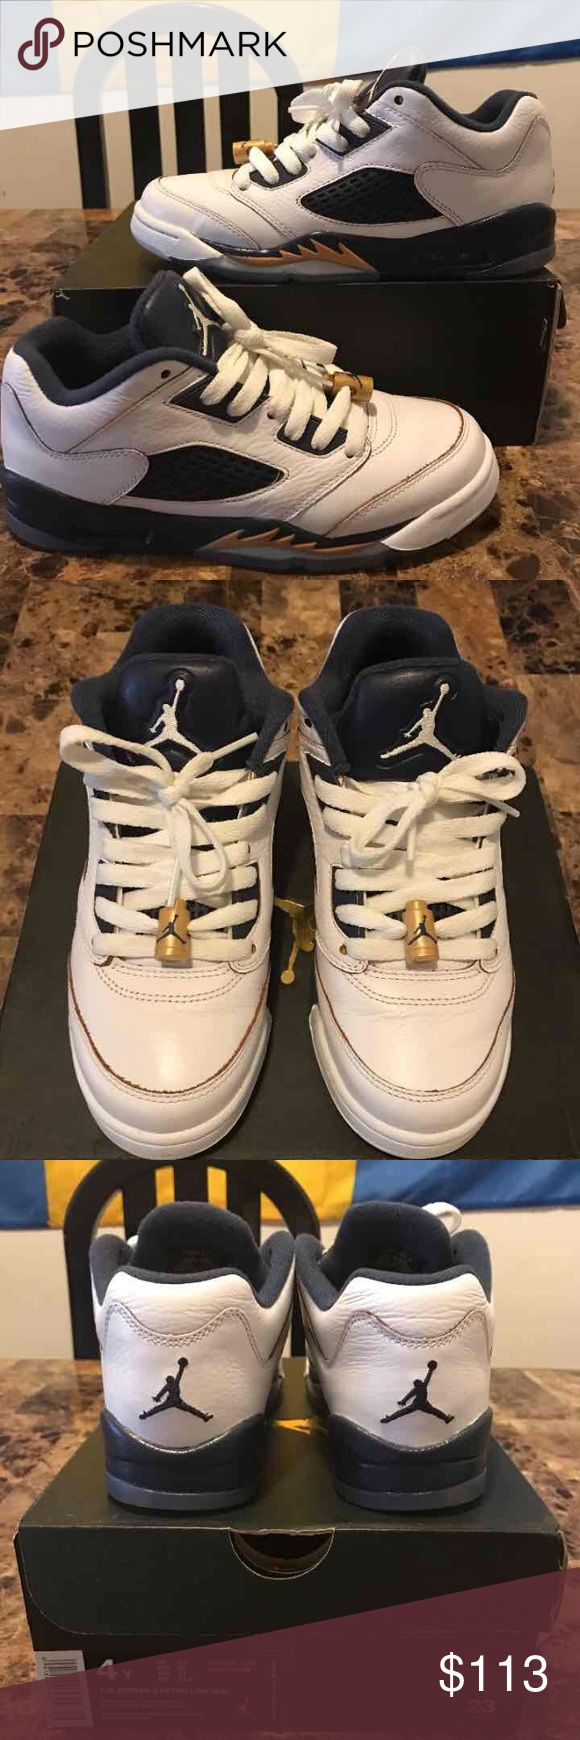 Air Jordan 5 Retro Low GS 314338-135 Excellent Condition!! Price Firm!!  Size 4Y Worn Once!! 100% Authentic Jordan Shoes Sneakers